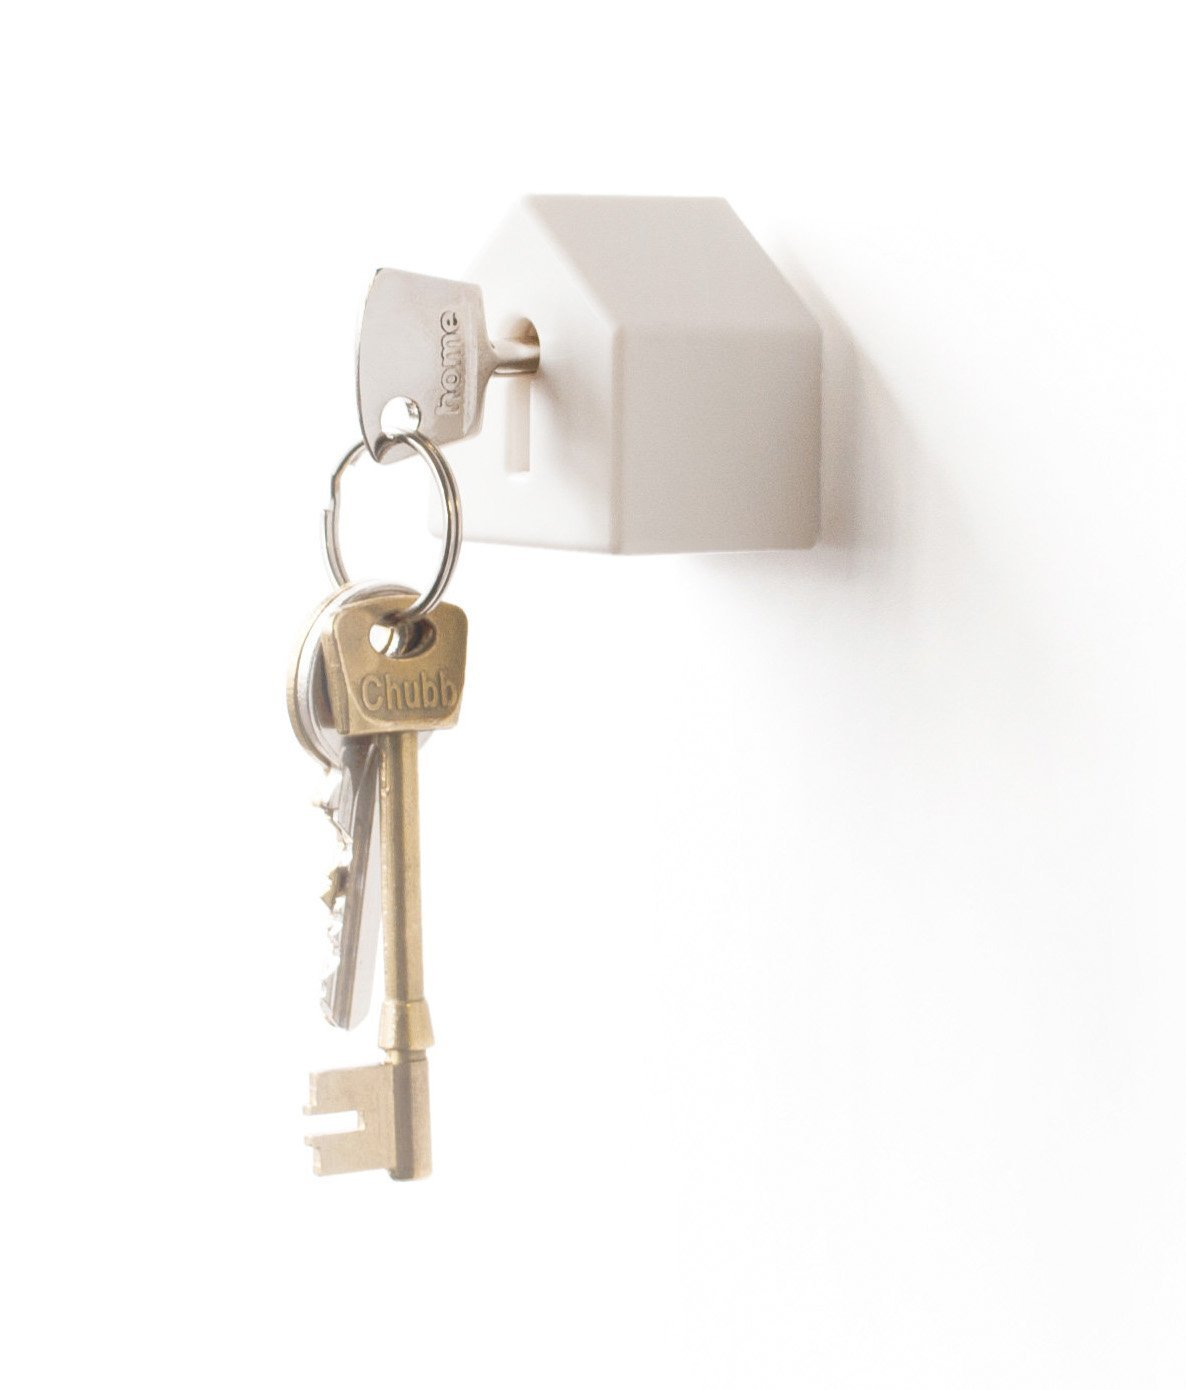 Key Key Holder Wall Mounted House Key Holder Craziest Gadgets